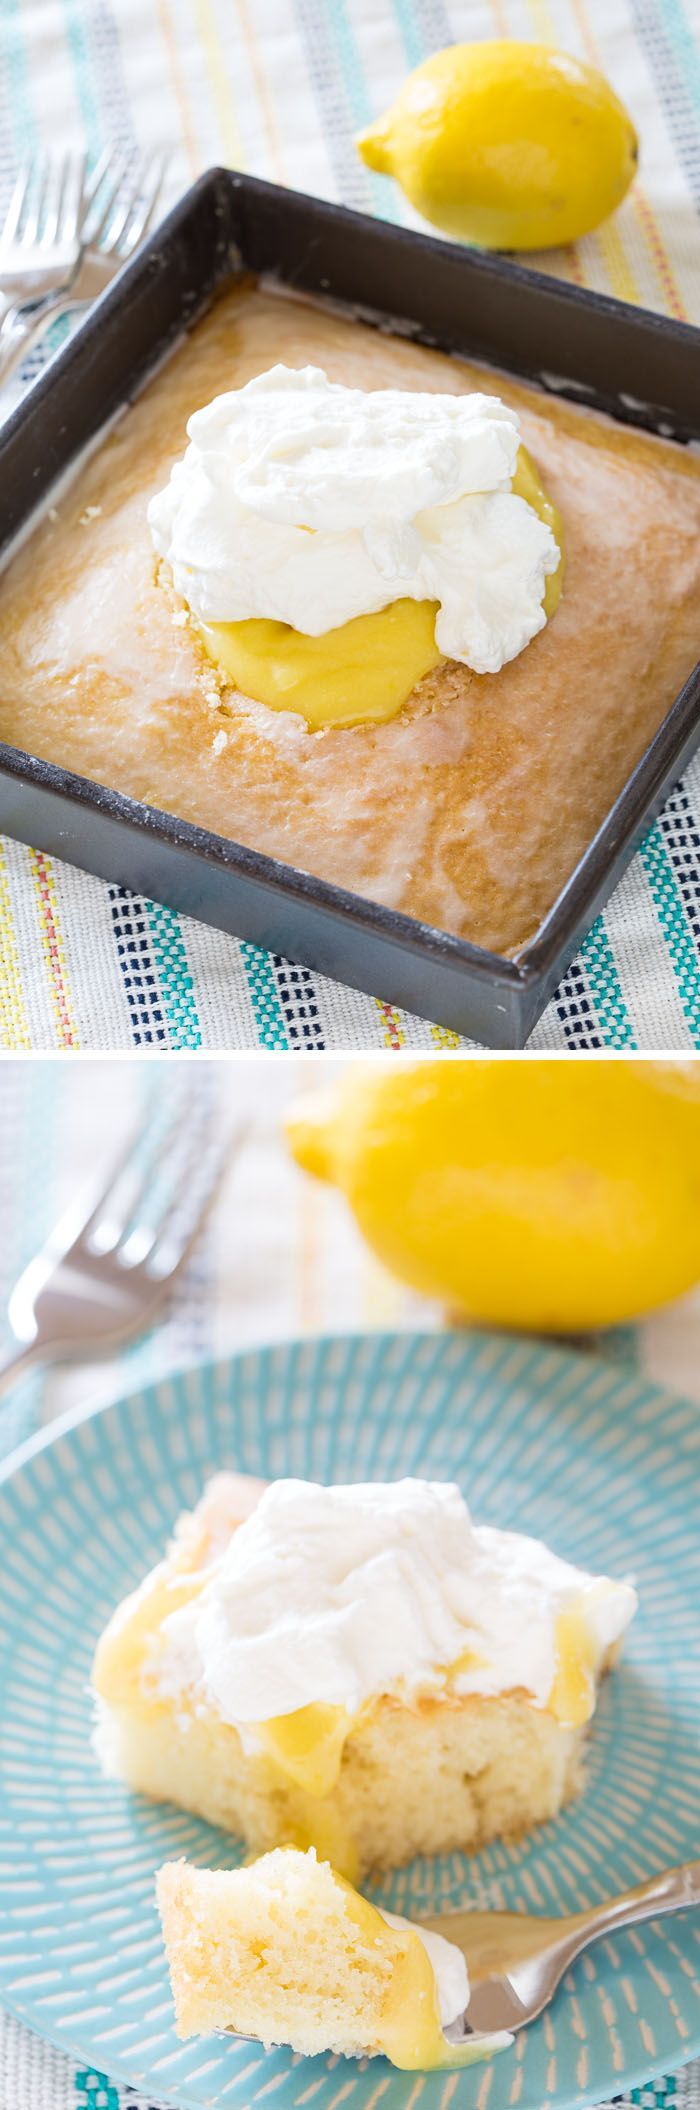 This recipe for Lemon Curd Cream Cake combines a buttery, melting white cake with lemon glaze, lemon curd, and whipped cream: a heavenly combination!